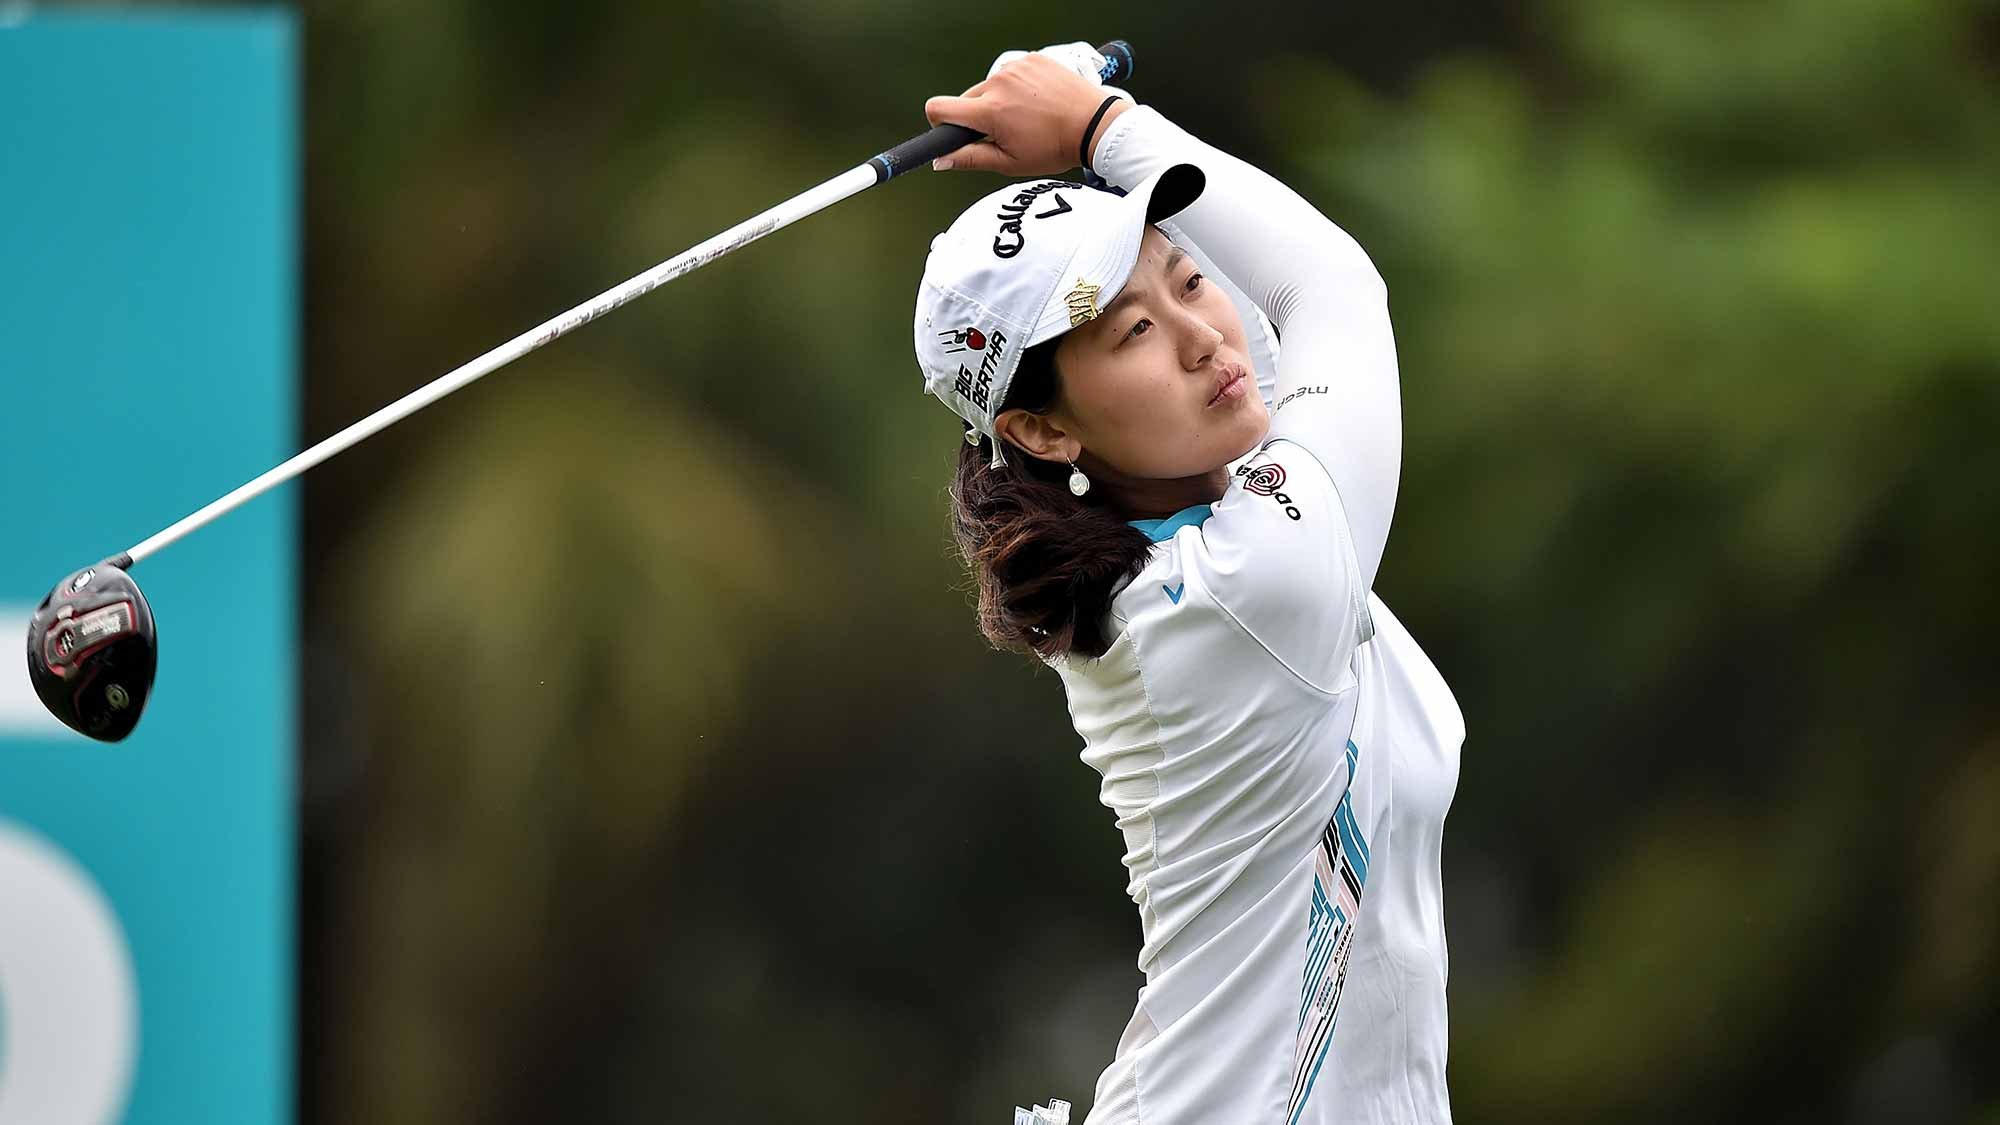 Xi Yu Lin of Republic of China plays the shot during the round one of 2015 Fubon LPGA Taiwan Championship at Miramar Golf & Country Club